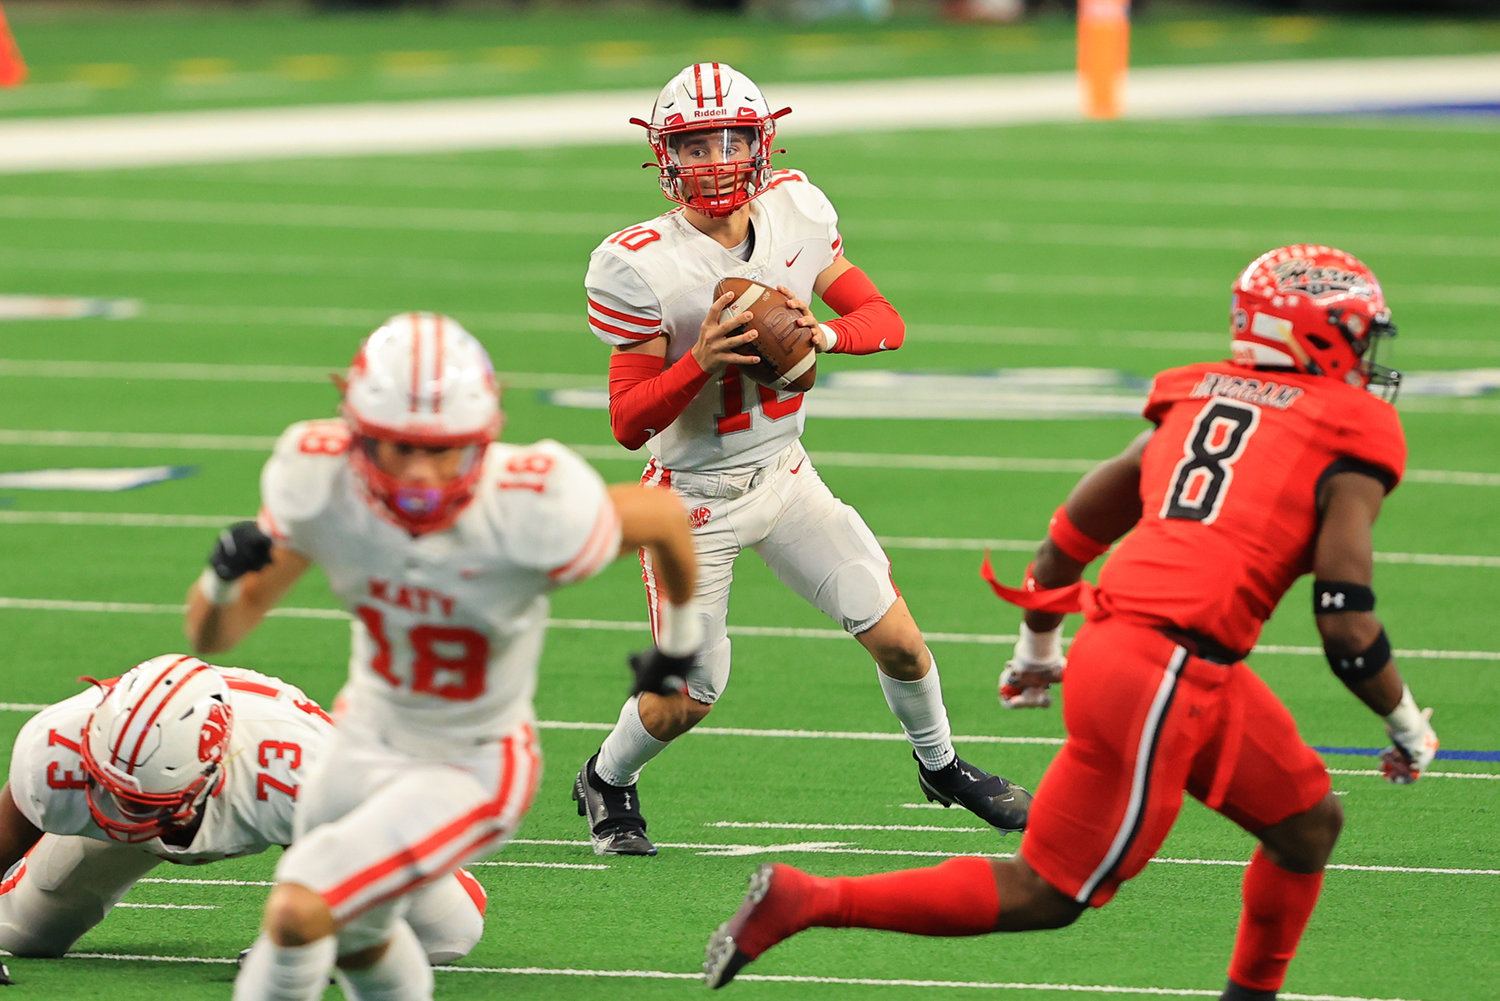 Katy High sophomore quarterback Caleb Koger (10) looks downfield during the Tigers' 51-14 Class 6A-Division II state championship win over Cedar Hill on Saturday, Jan. 16, at AT&T Stadium in Arlington.